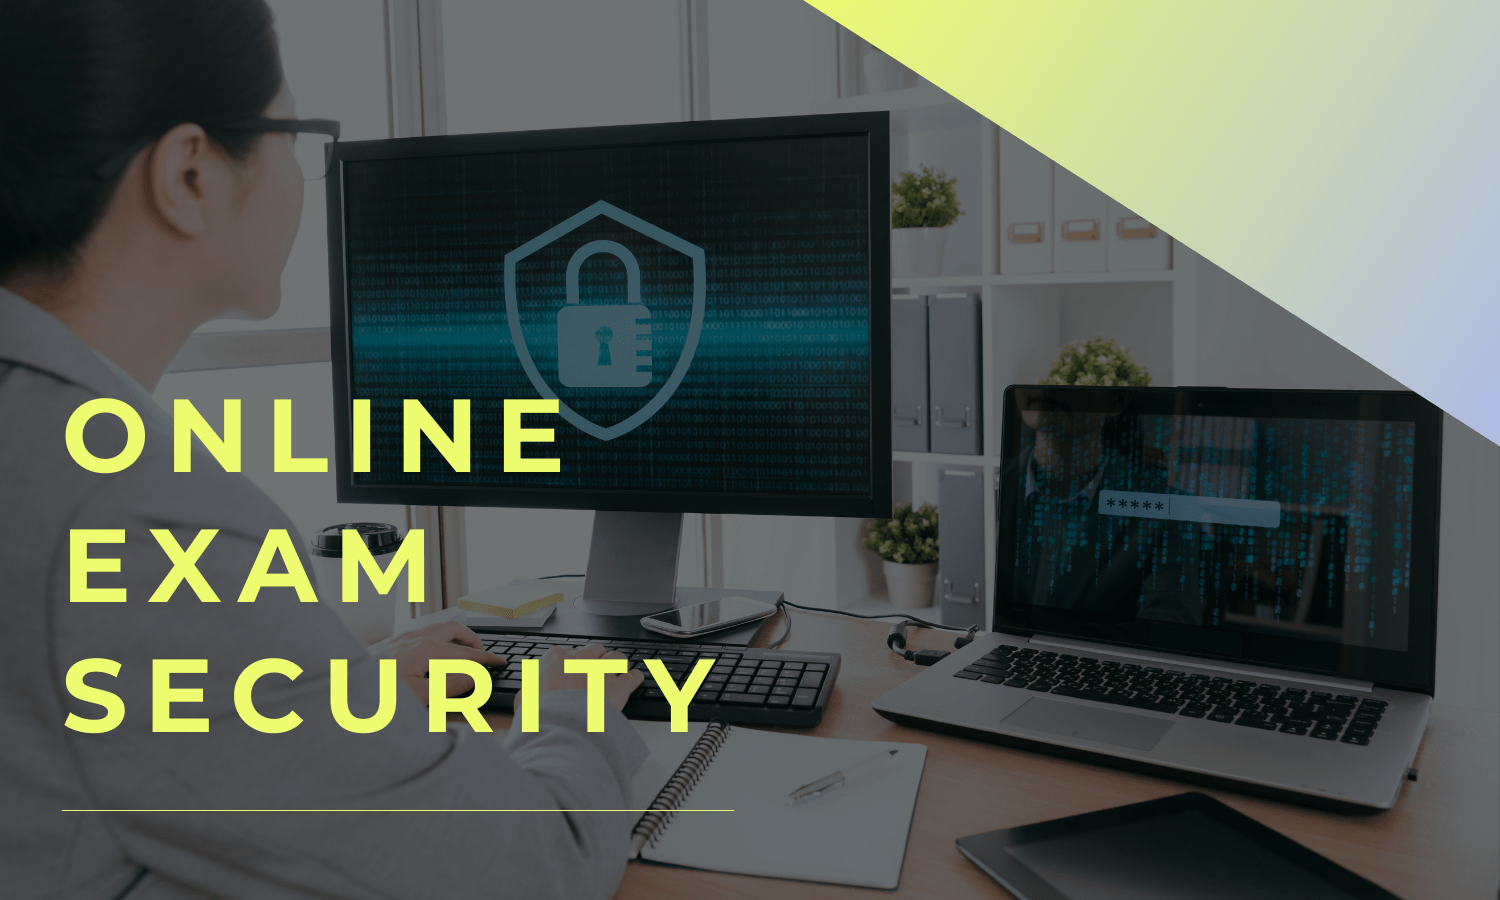 secure and cheating free online exams management